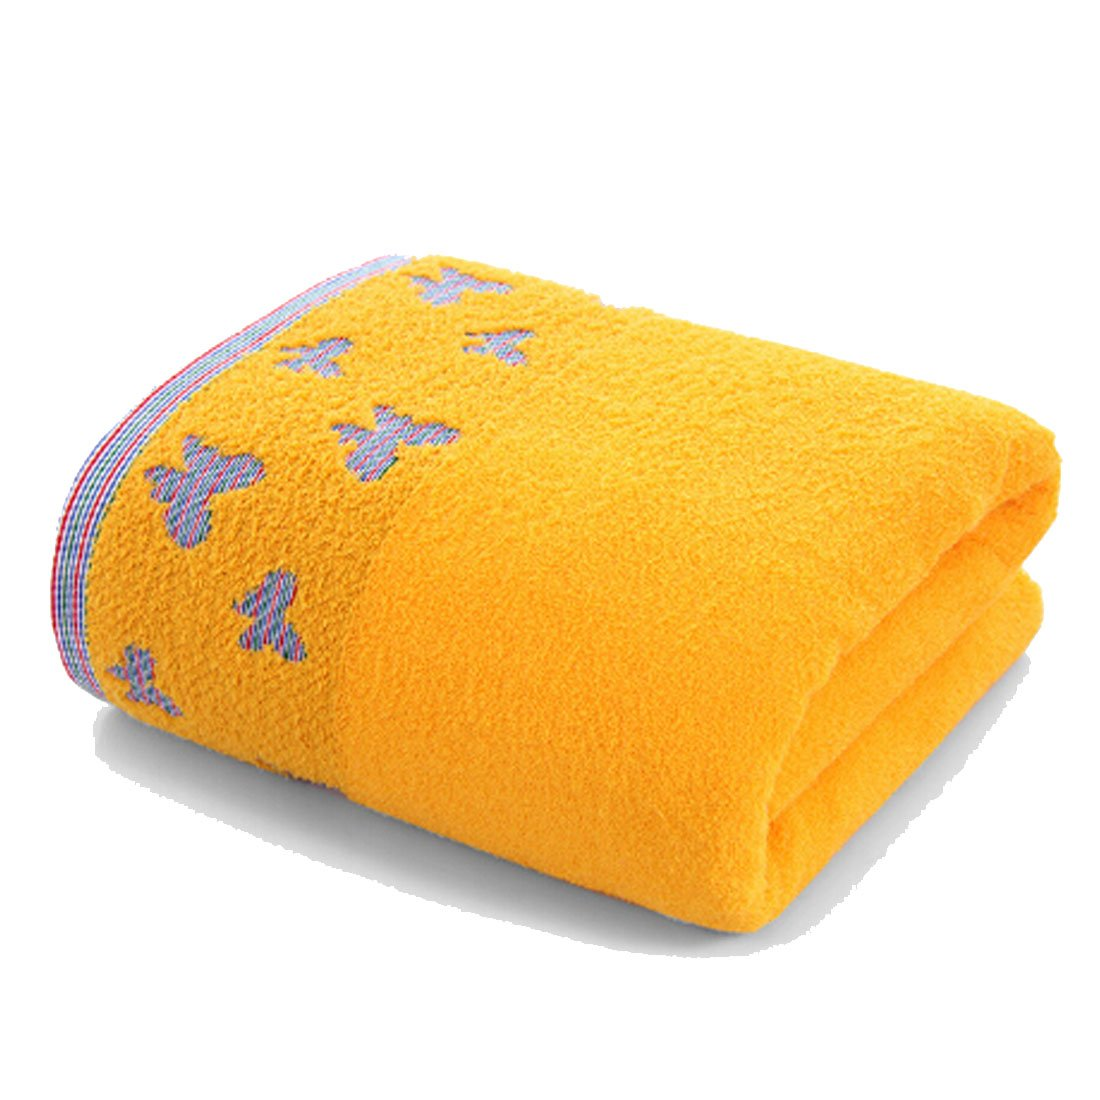 Osave Womens 100% Cotton Swimming Towel Wrap Spa Bath Shower Wrap For College Dorms, Pools, Gyms, Beaches, Locker Rooms, Bathroom, 27.3'' x 52.6'' (Yellow)